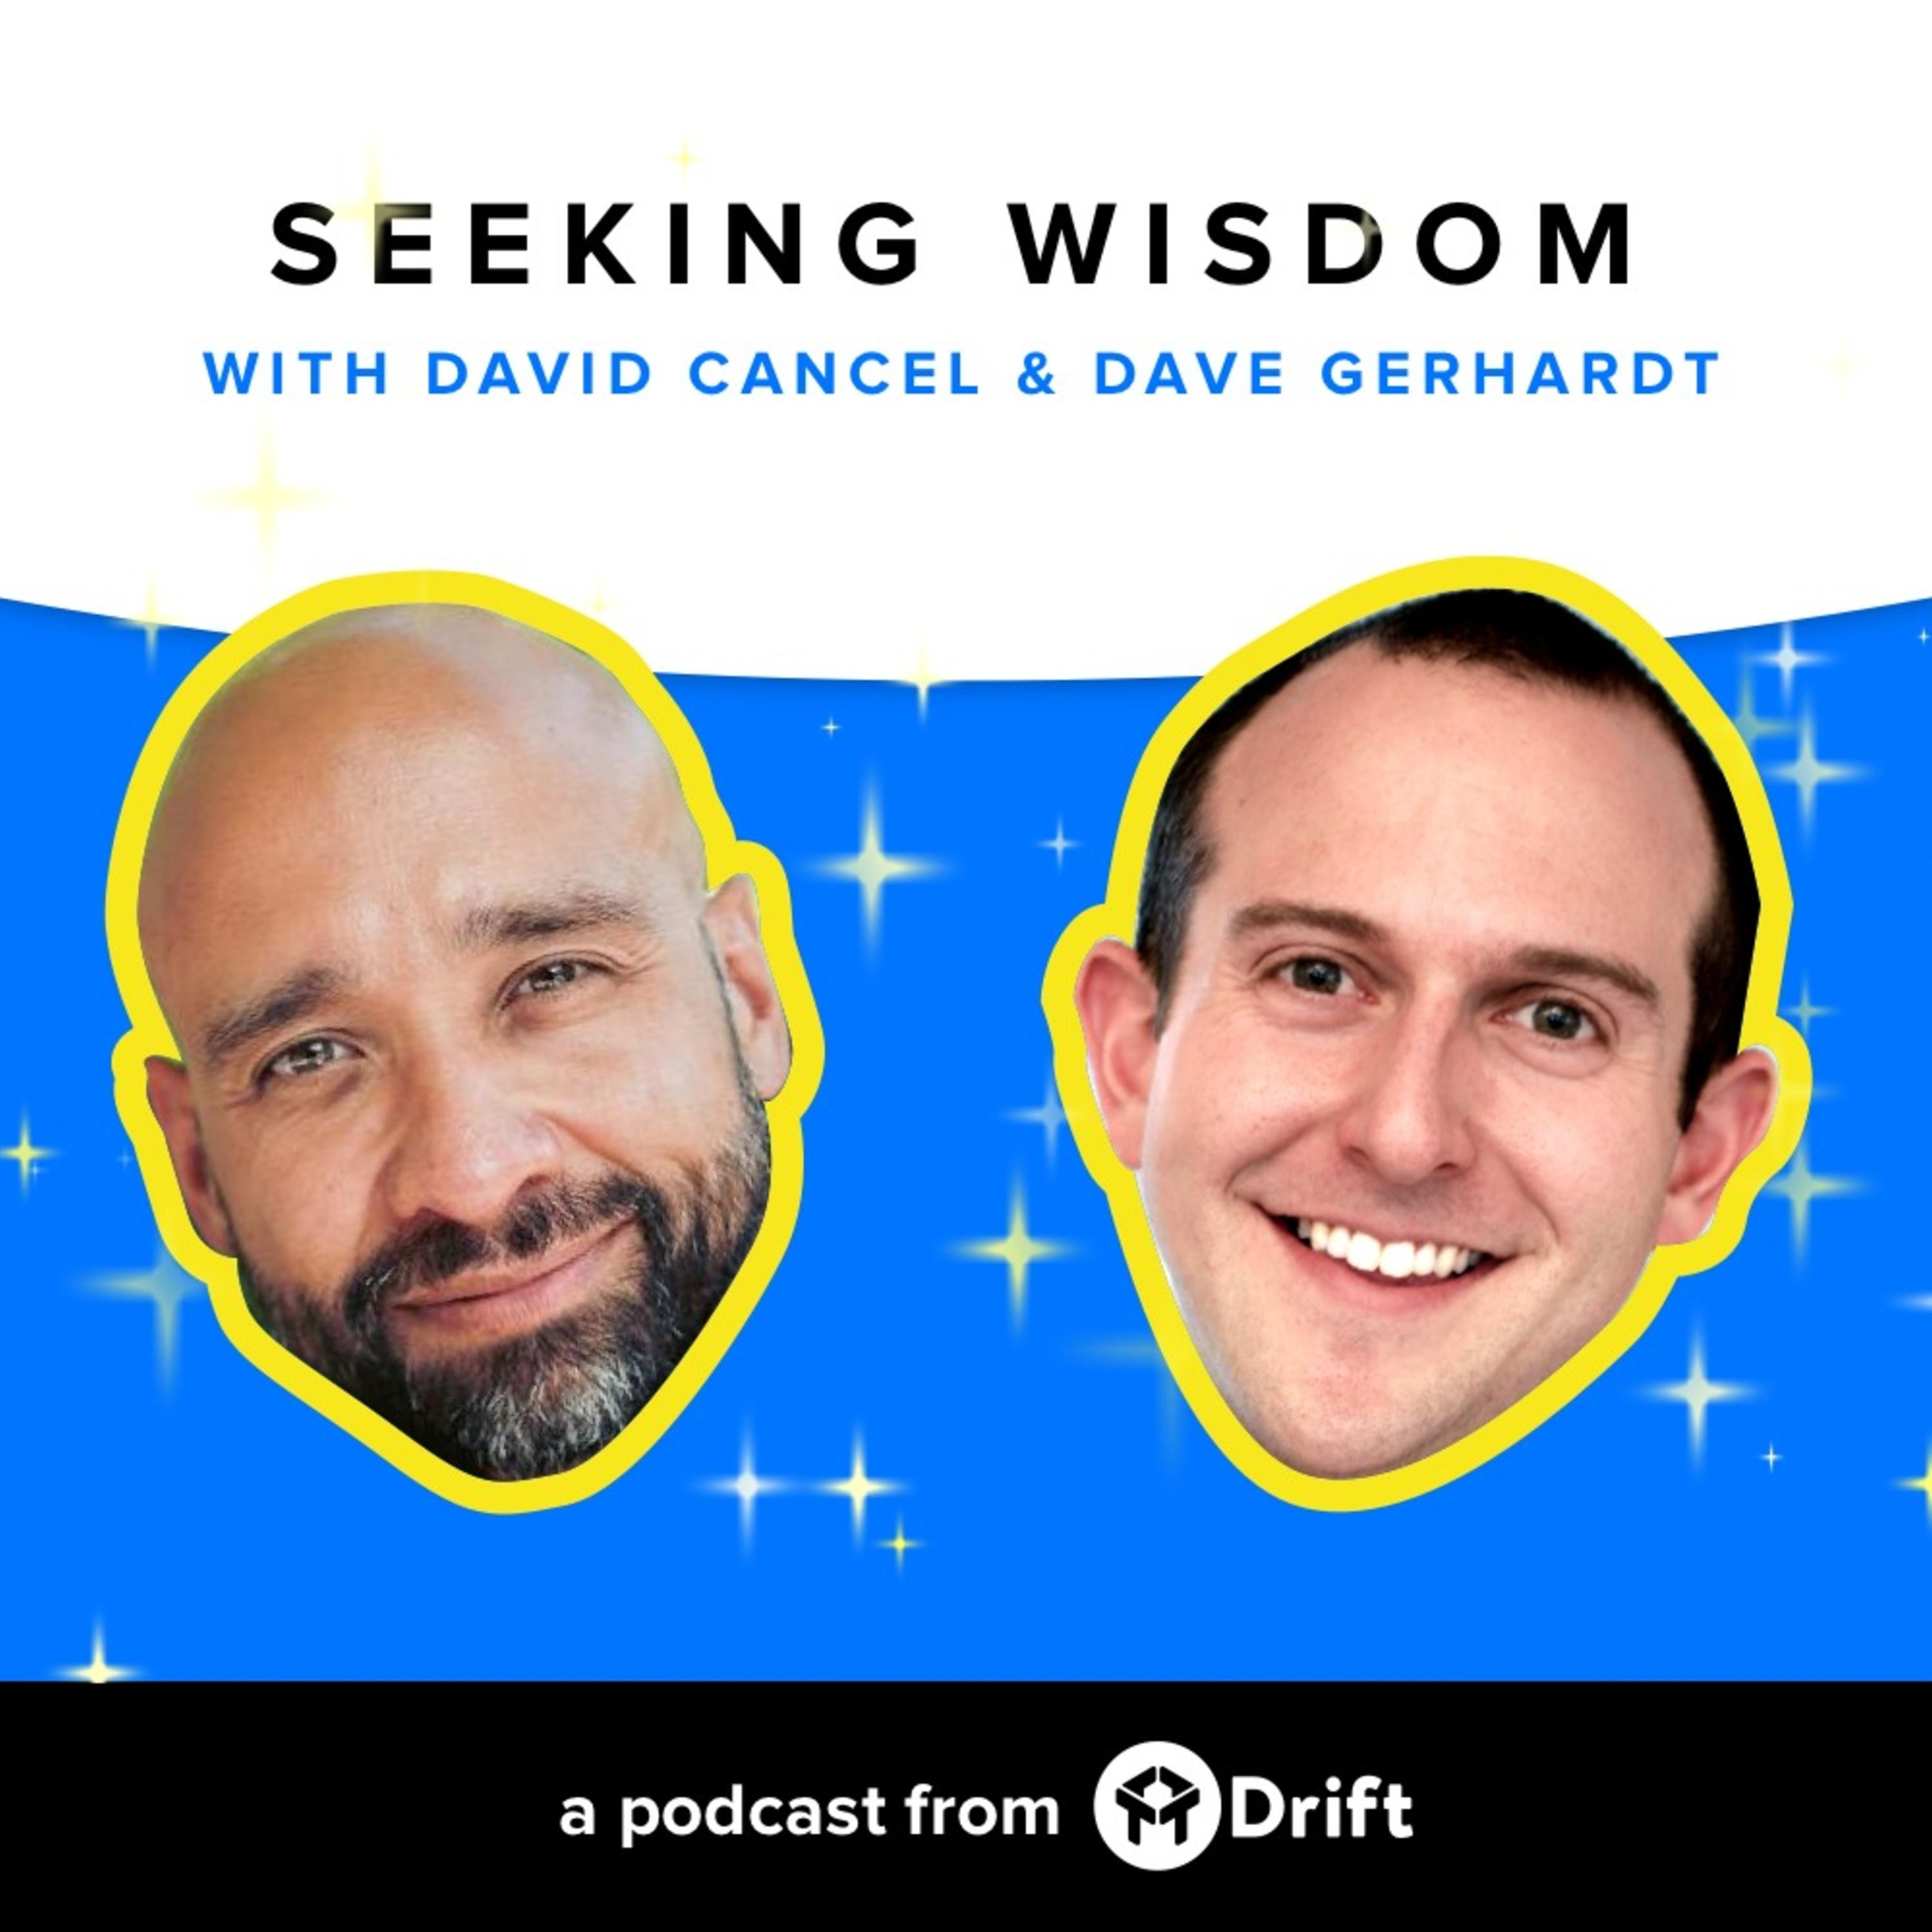 #74 Finding Your Why